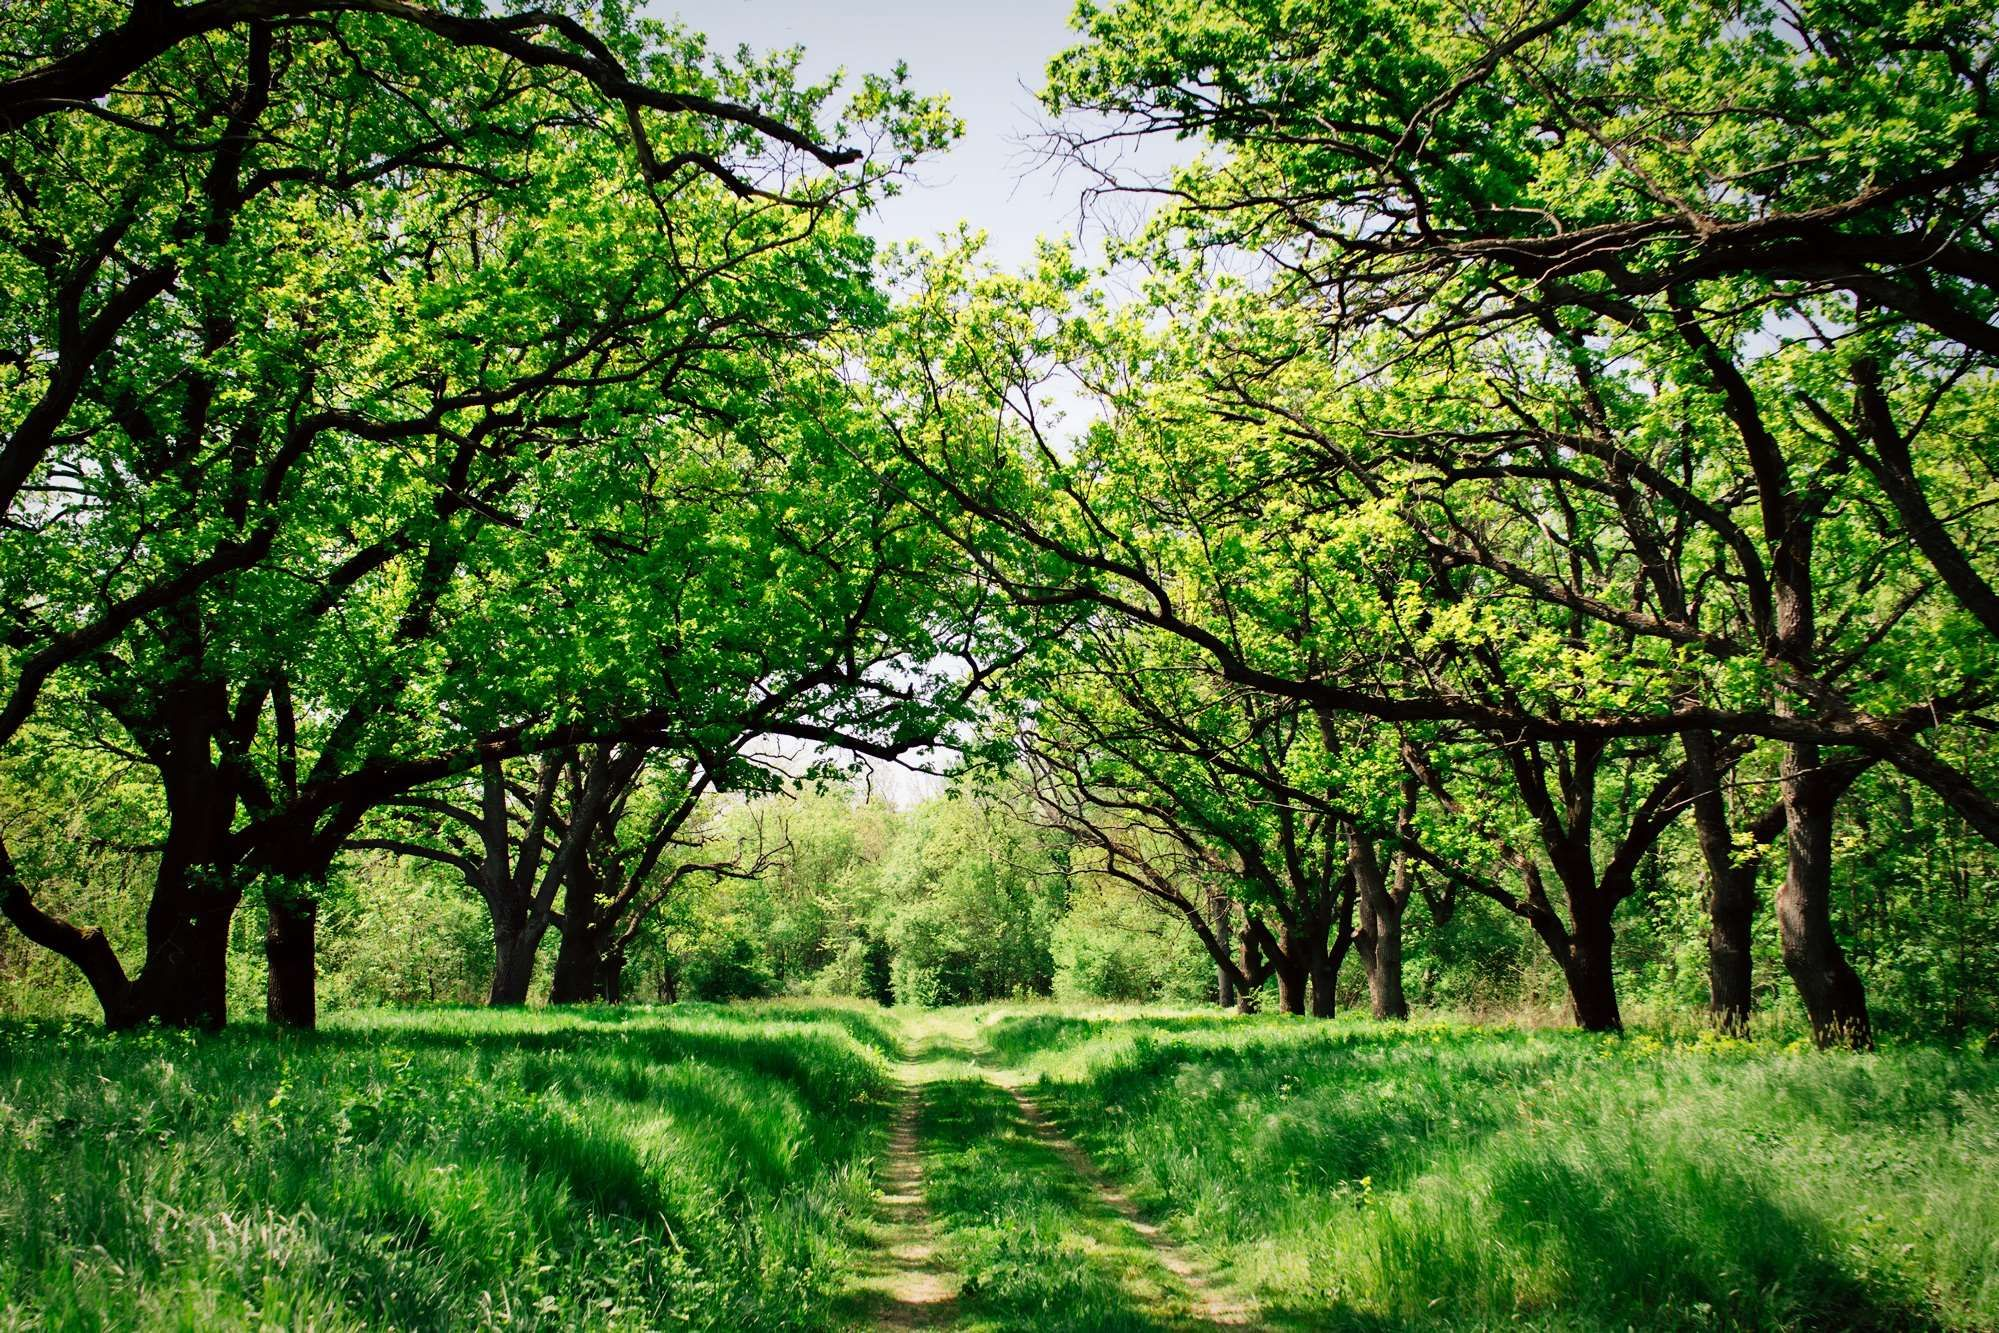 Country Countryside Field Forest Hdr Landscape Meadow Nature Outdoors Path Rural Spring Summer Tree Spring Wallpaper Landscape Spring Photography